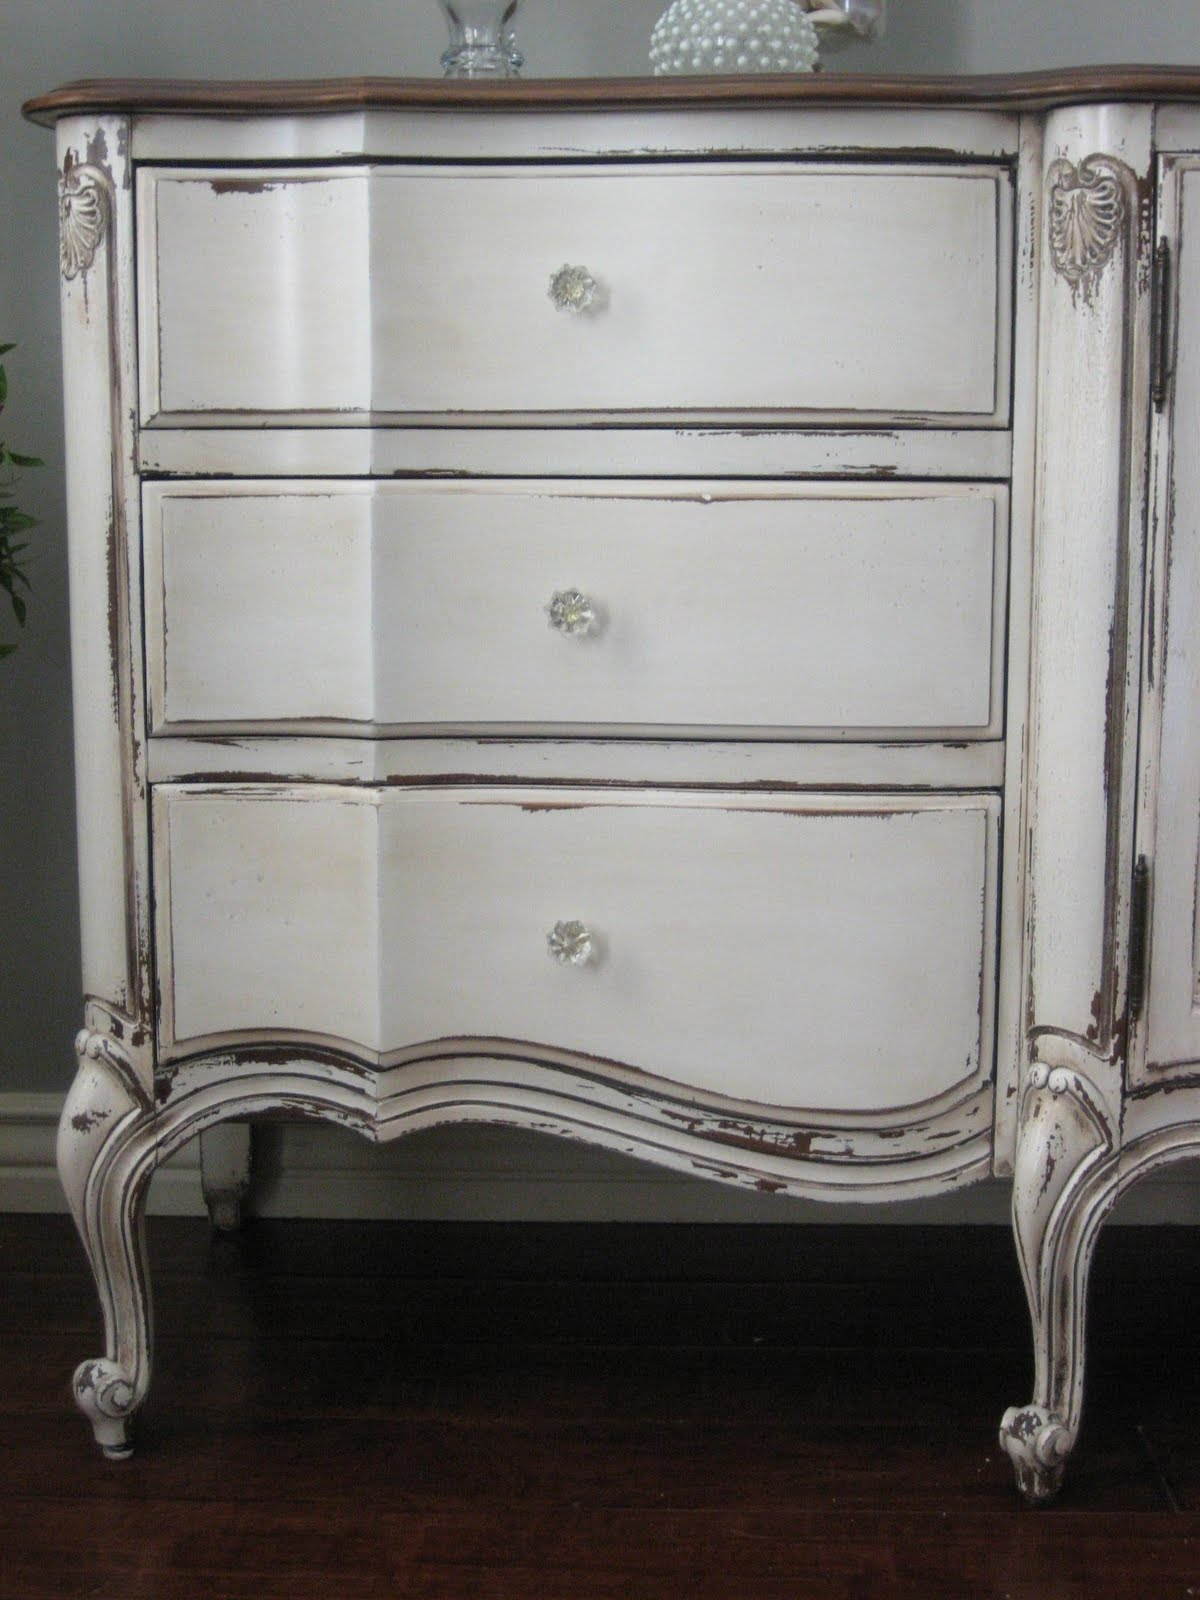 Provincial further grey painted french provincial bedroom furniture - French Provincial Dresser